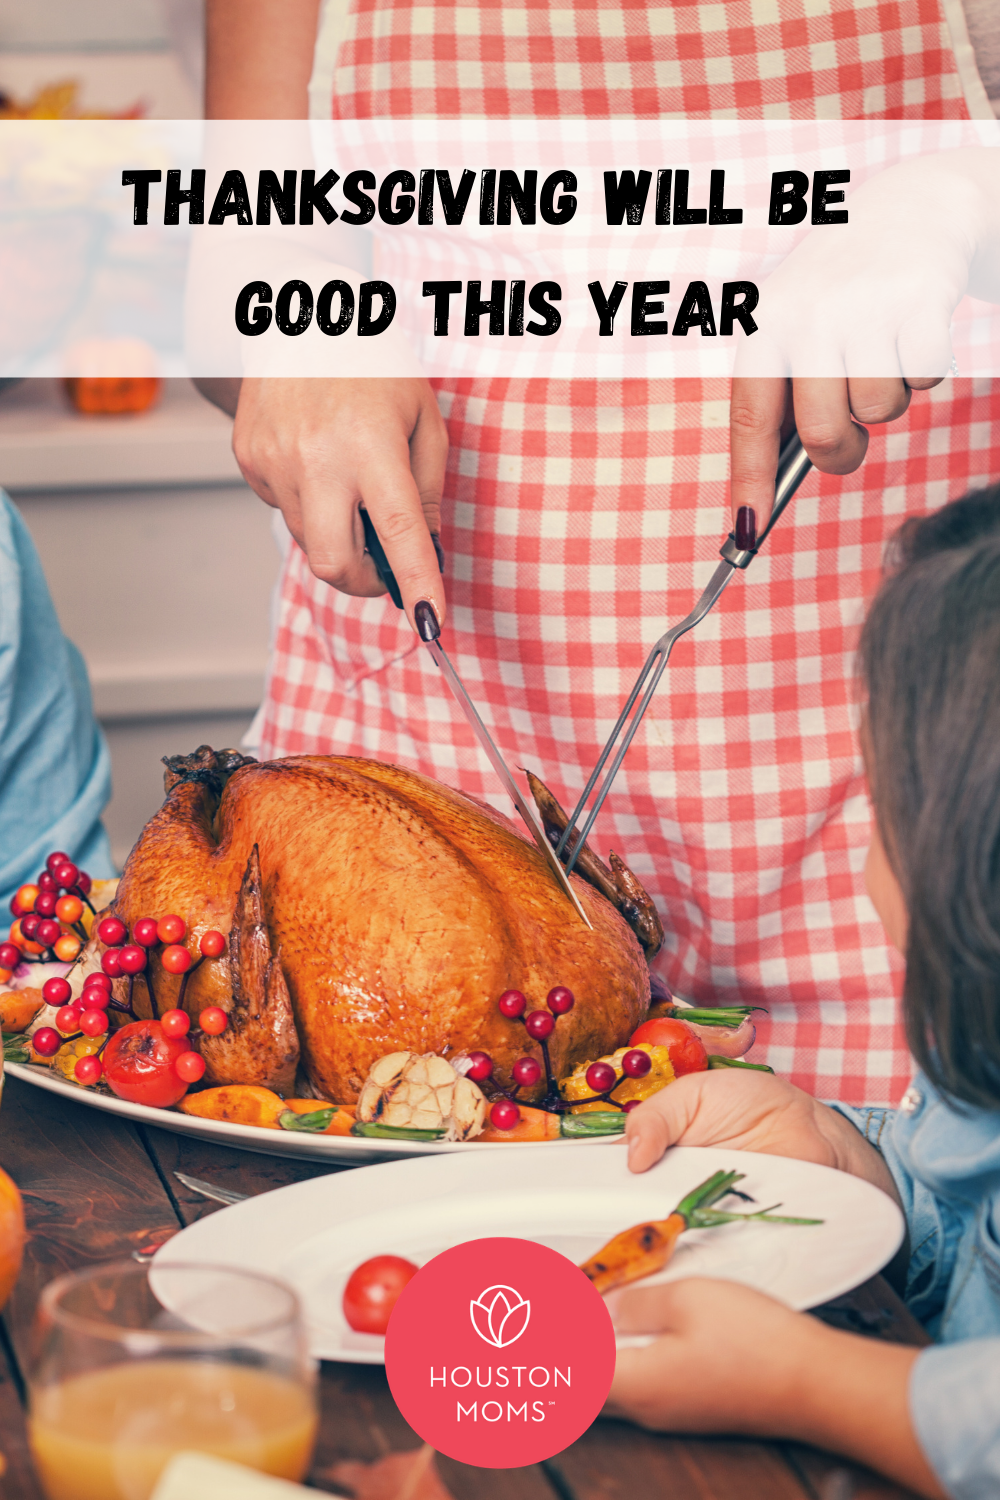 """Houston Moms """"Thanksgiving will Be Good This Year"""" #houstonmoms #houstonmomsblog #momsaroundhouston"""